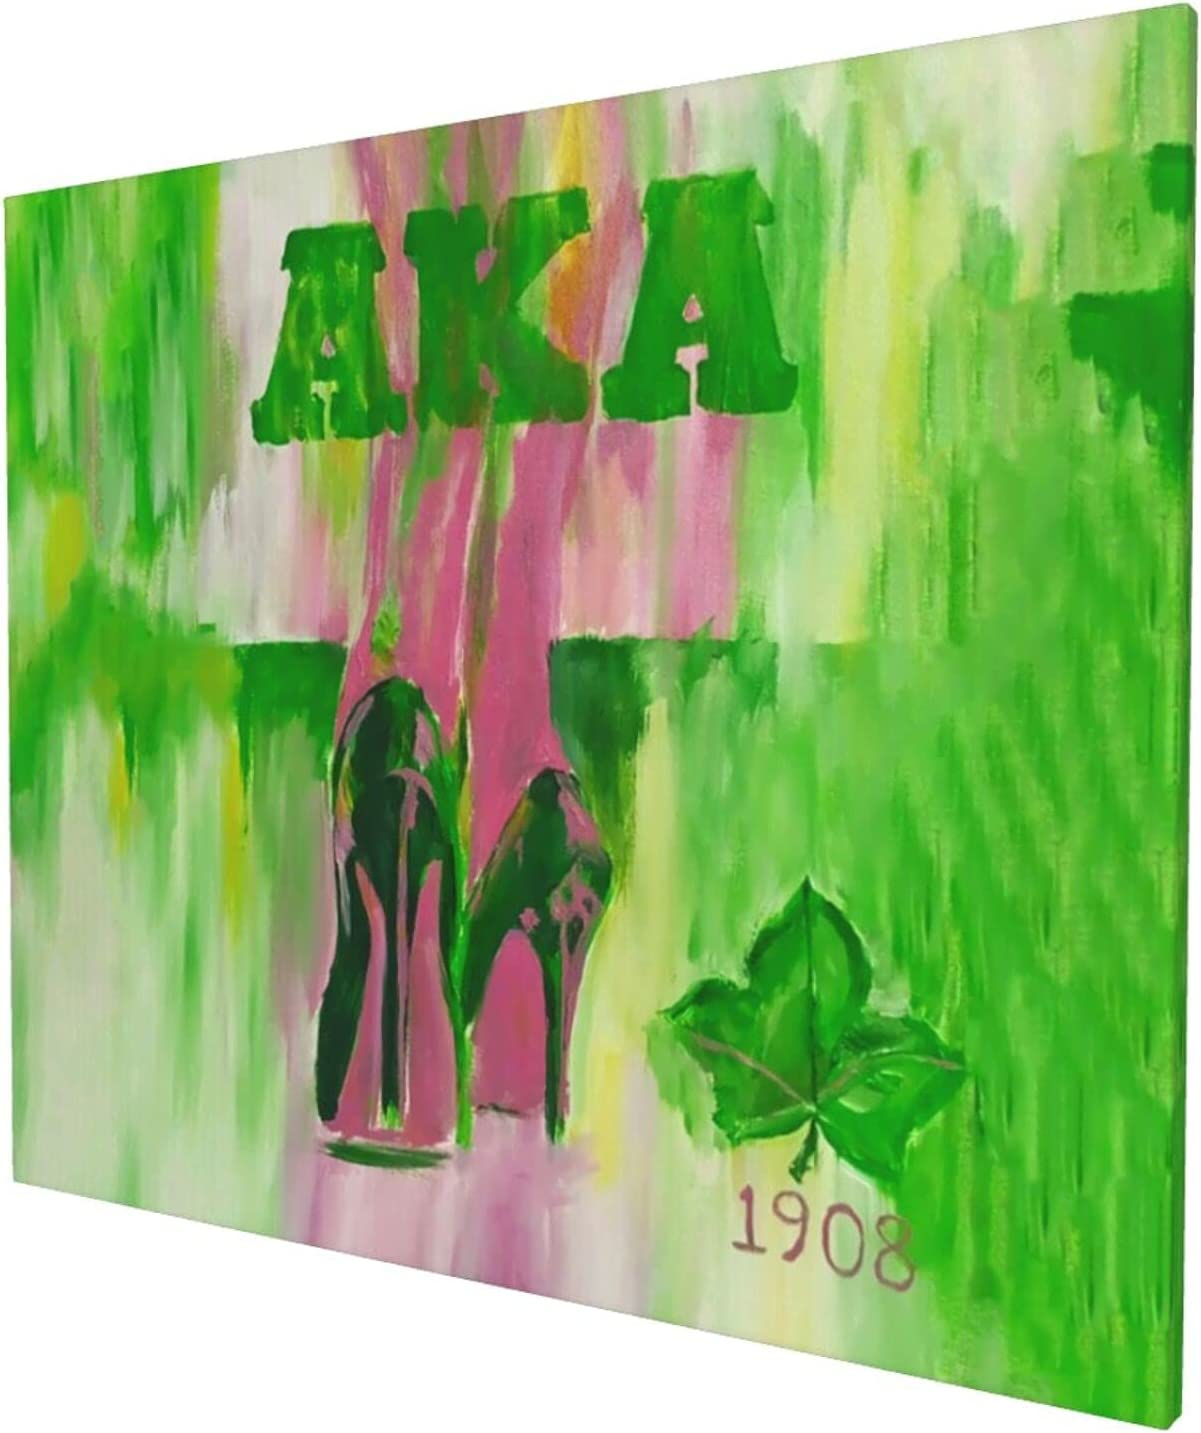 Al-ph-a K_a-pp_a Al-p_ha 1908 AKA Sorority Decor Canvas Framed Wall Decoration Gallery Wall Decor Picture Artwork to Hang for Kitchen Living Room Bedroom Office 20x24 inch Decorative paintings